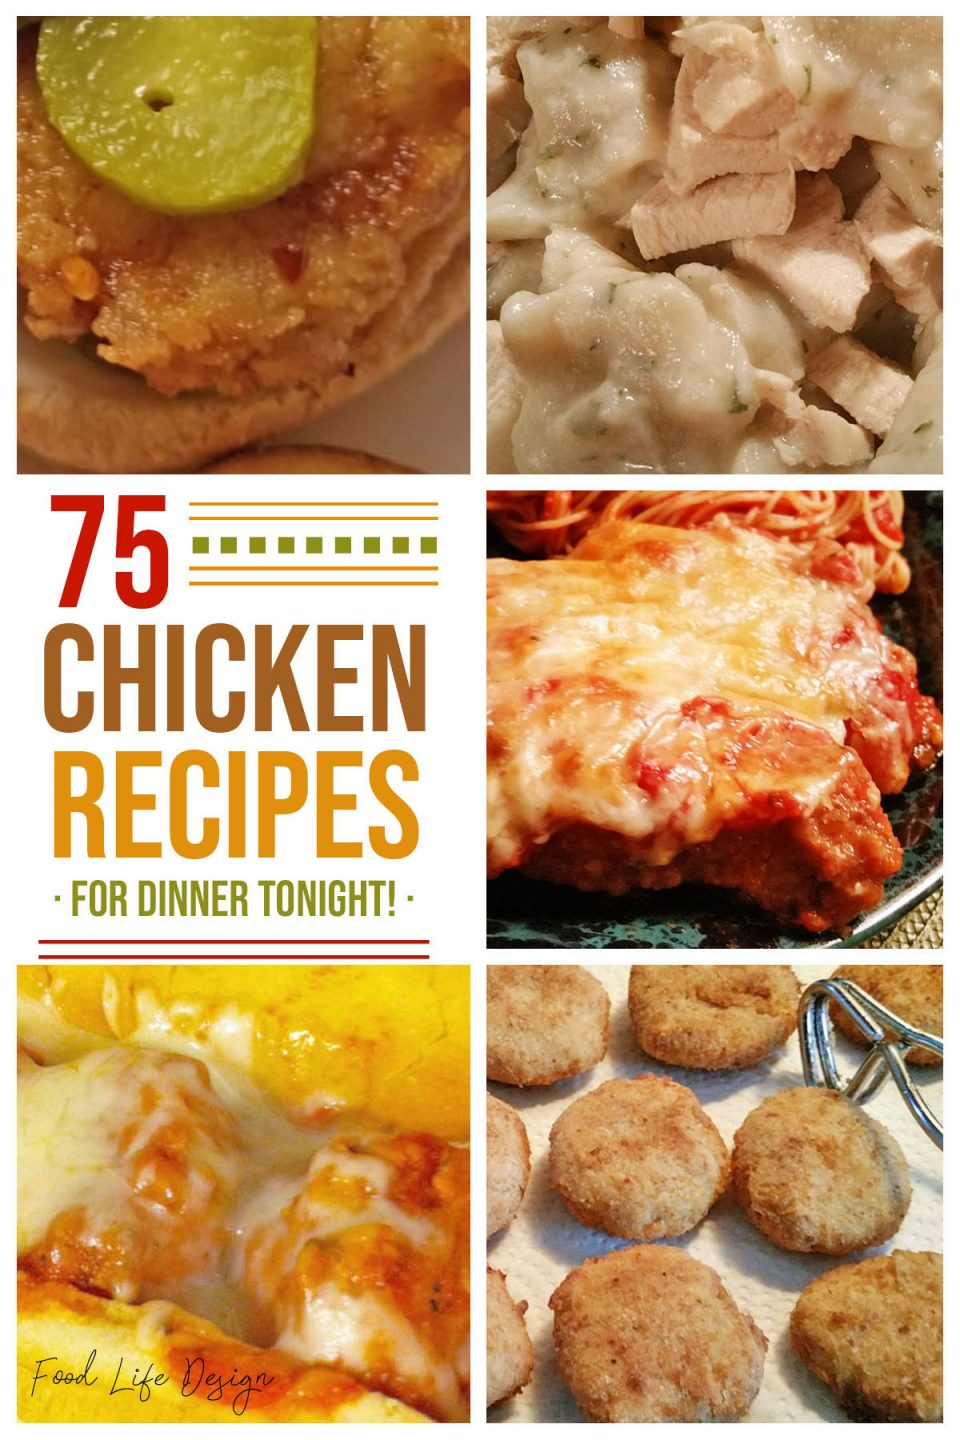 75 Chicken Recipes for Dinner - Food Life Design